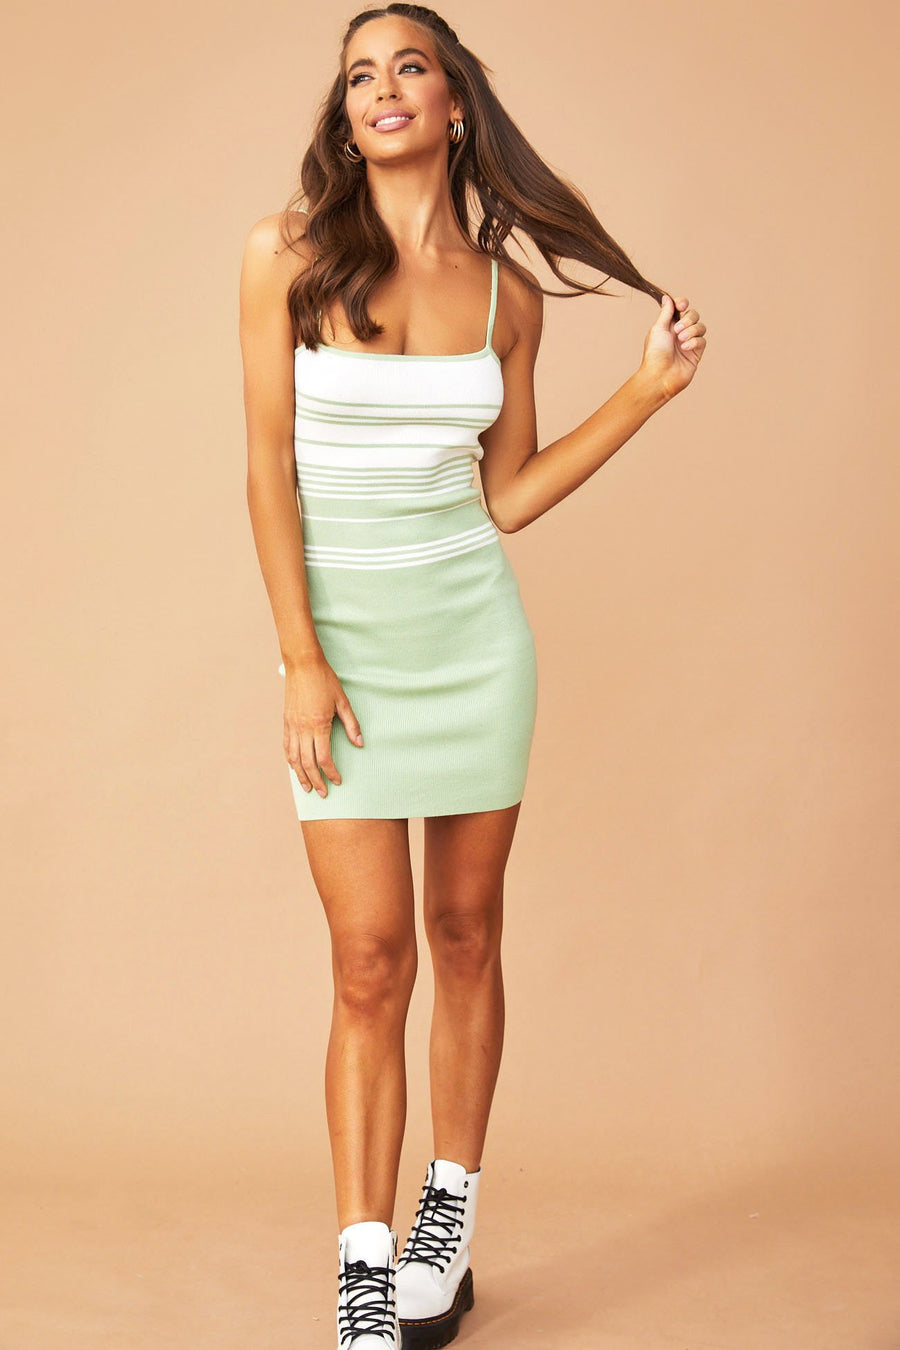 Monique Strap Dress // Lime | Sage and Paige.?id=25780540276905